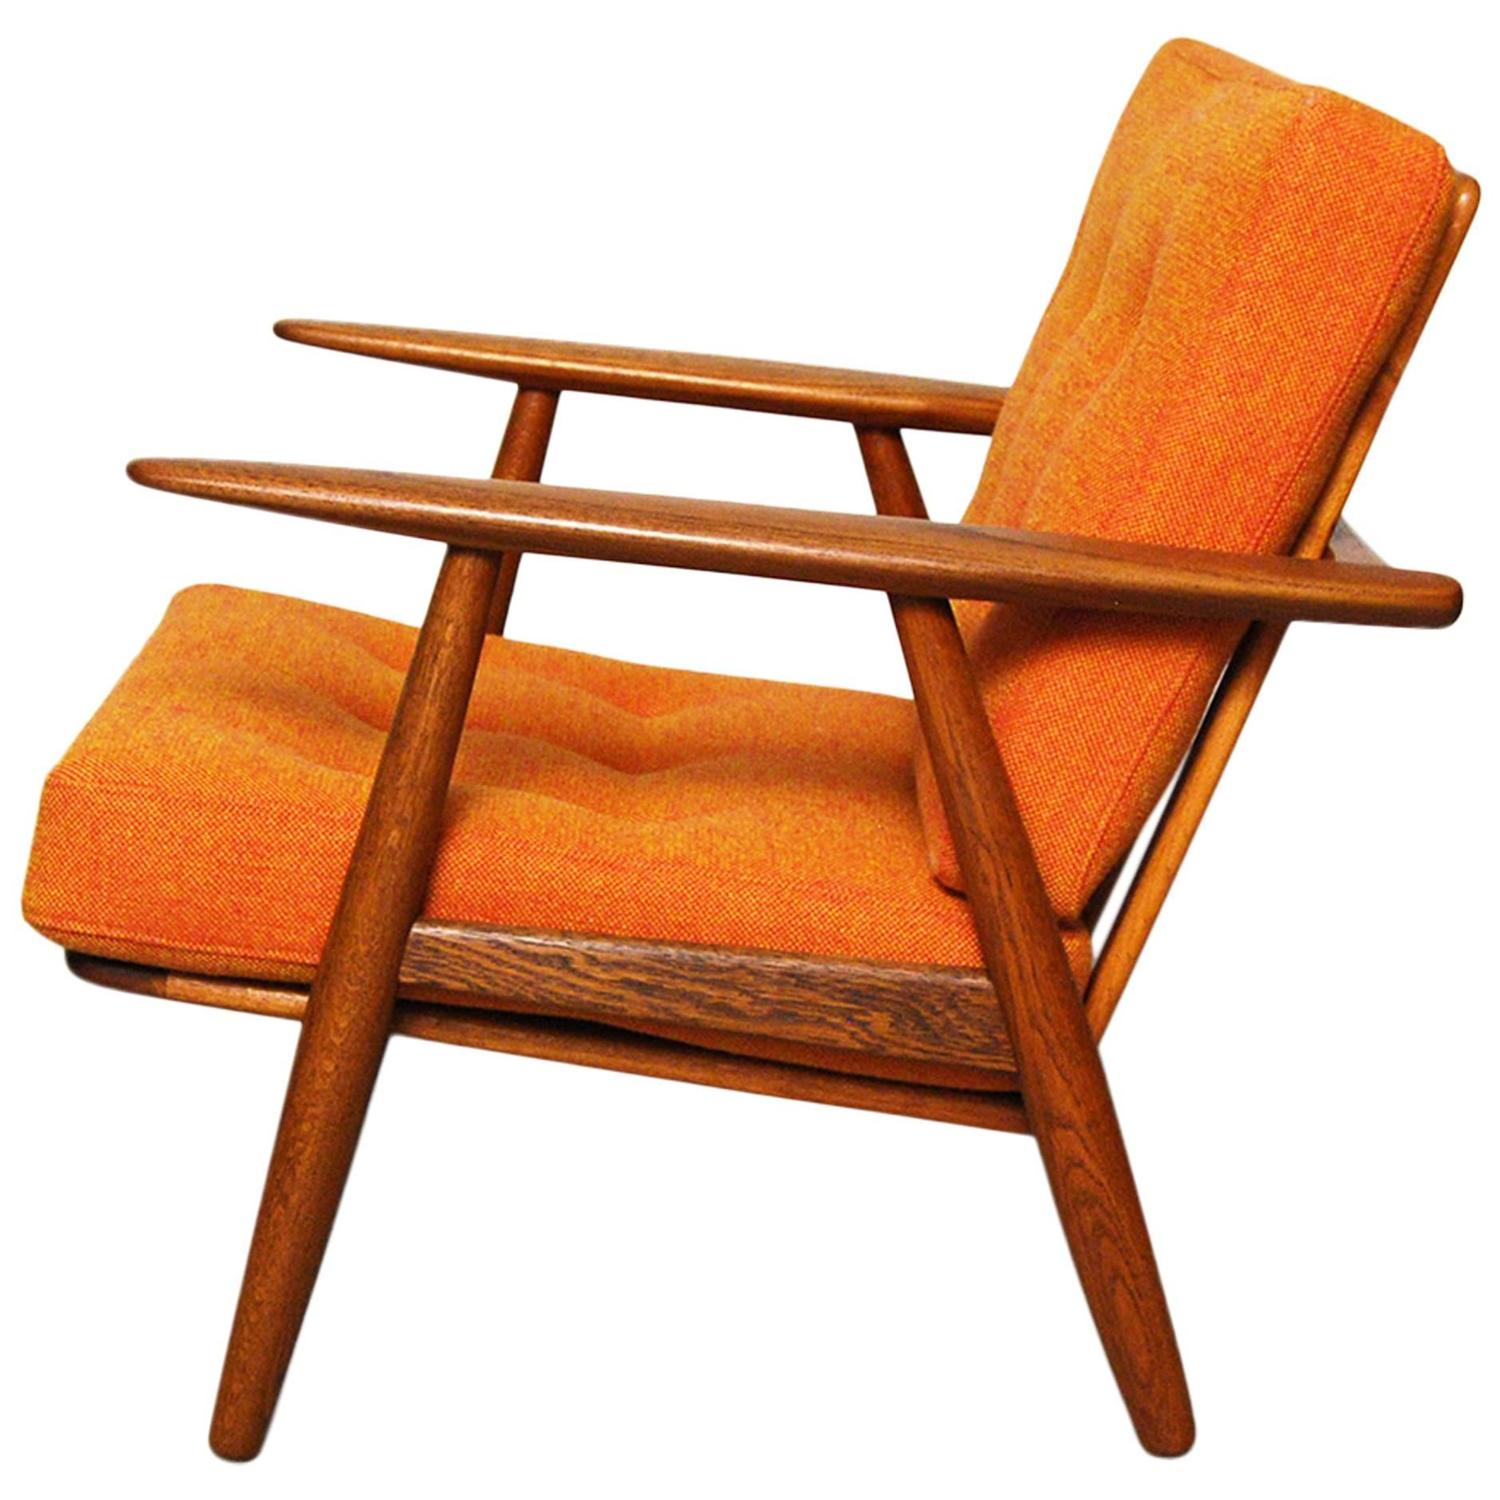 Hans Wegner GE 240 Cigar Chair at 1stdibs